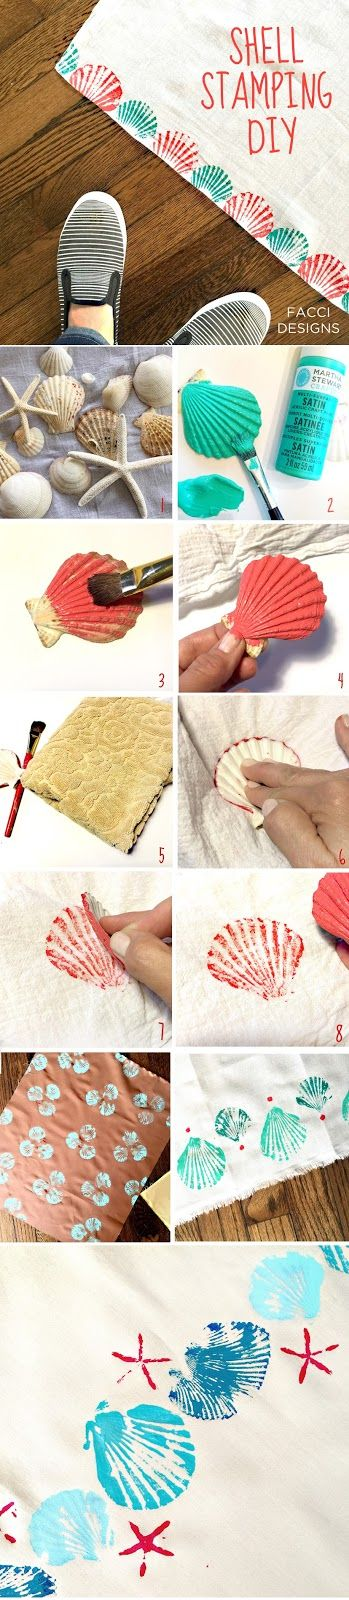 Learn how to stamp with shells with Facci Designs